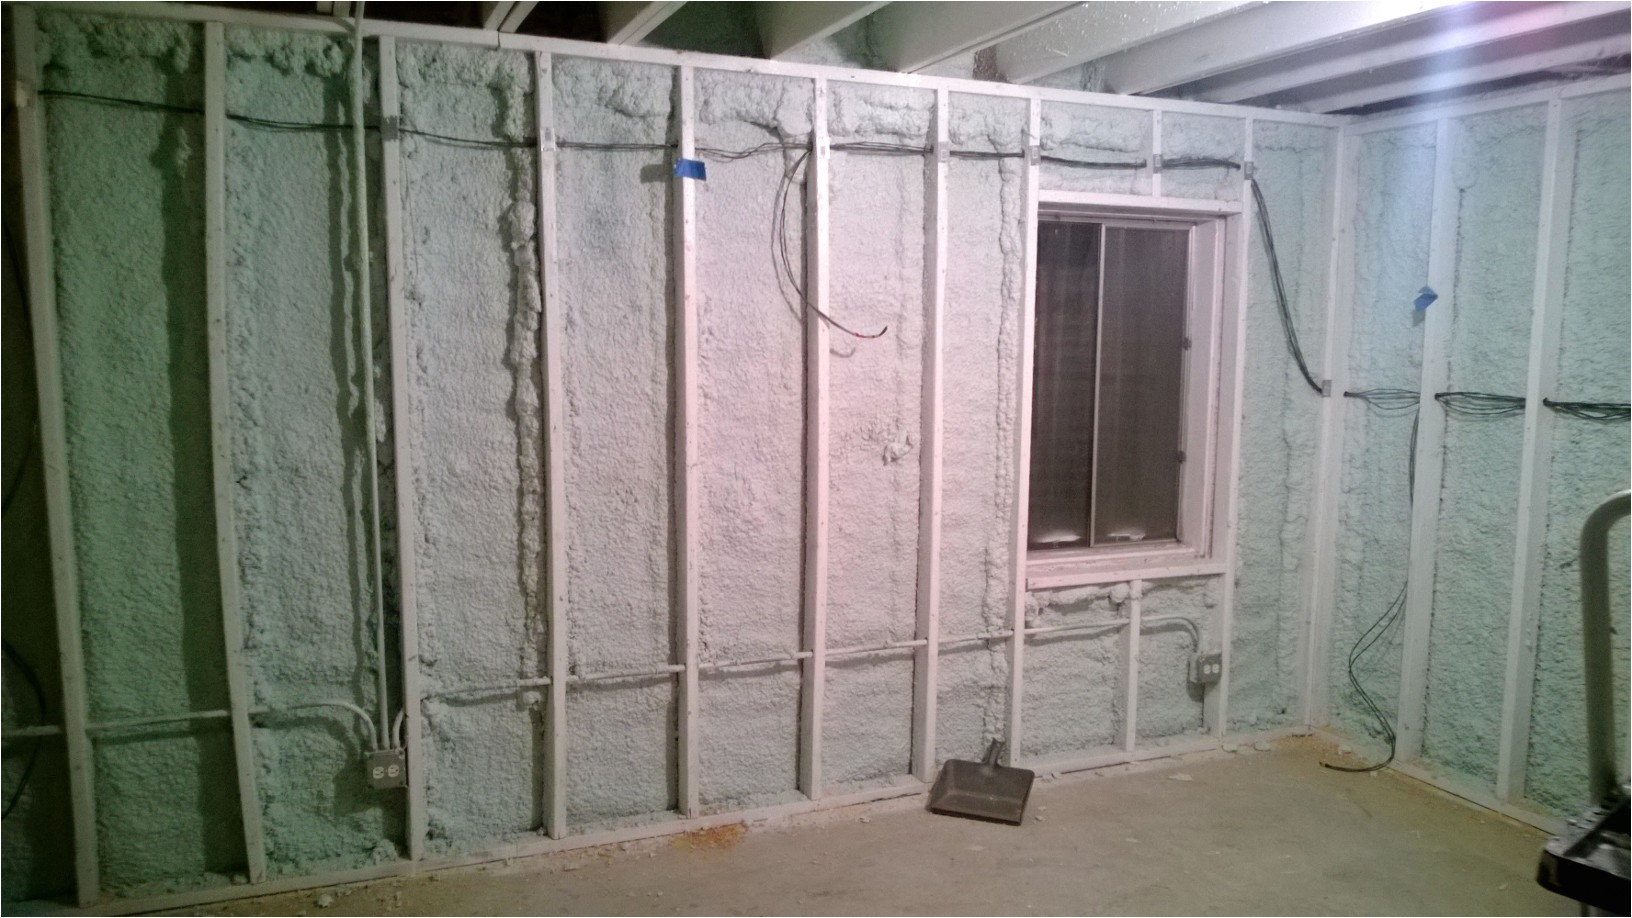 i finished my little project last thursday and i will tell you that your foam it green insulation was a lot easier to apply than i was expecting